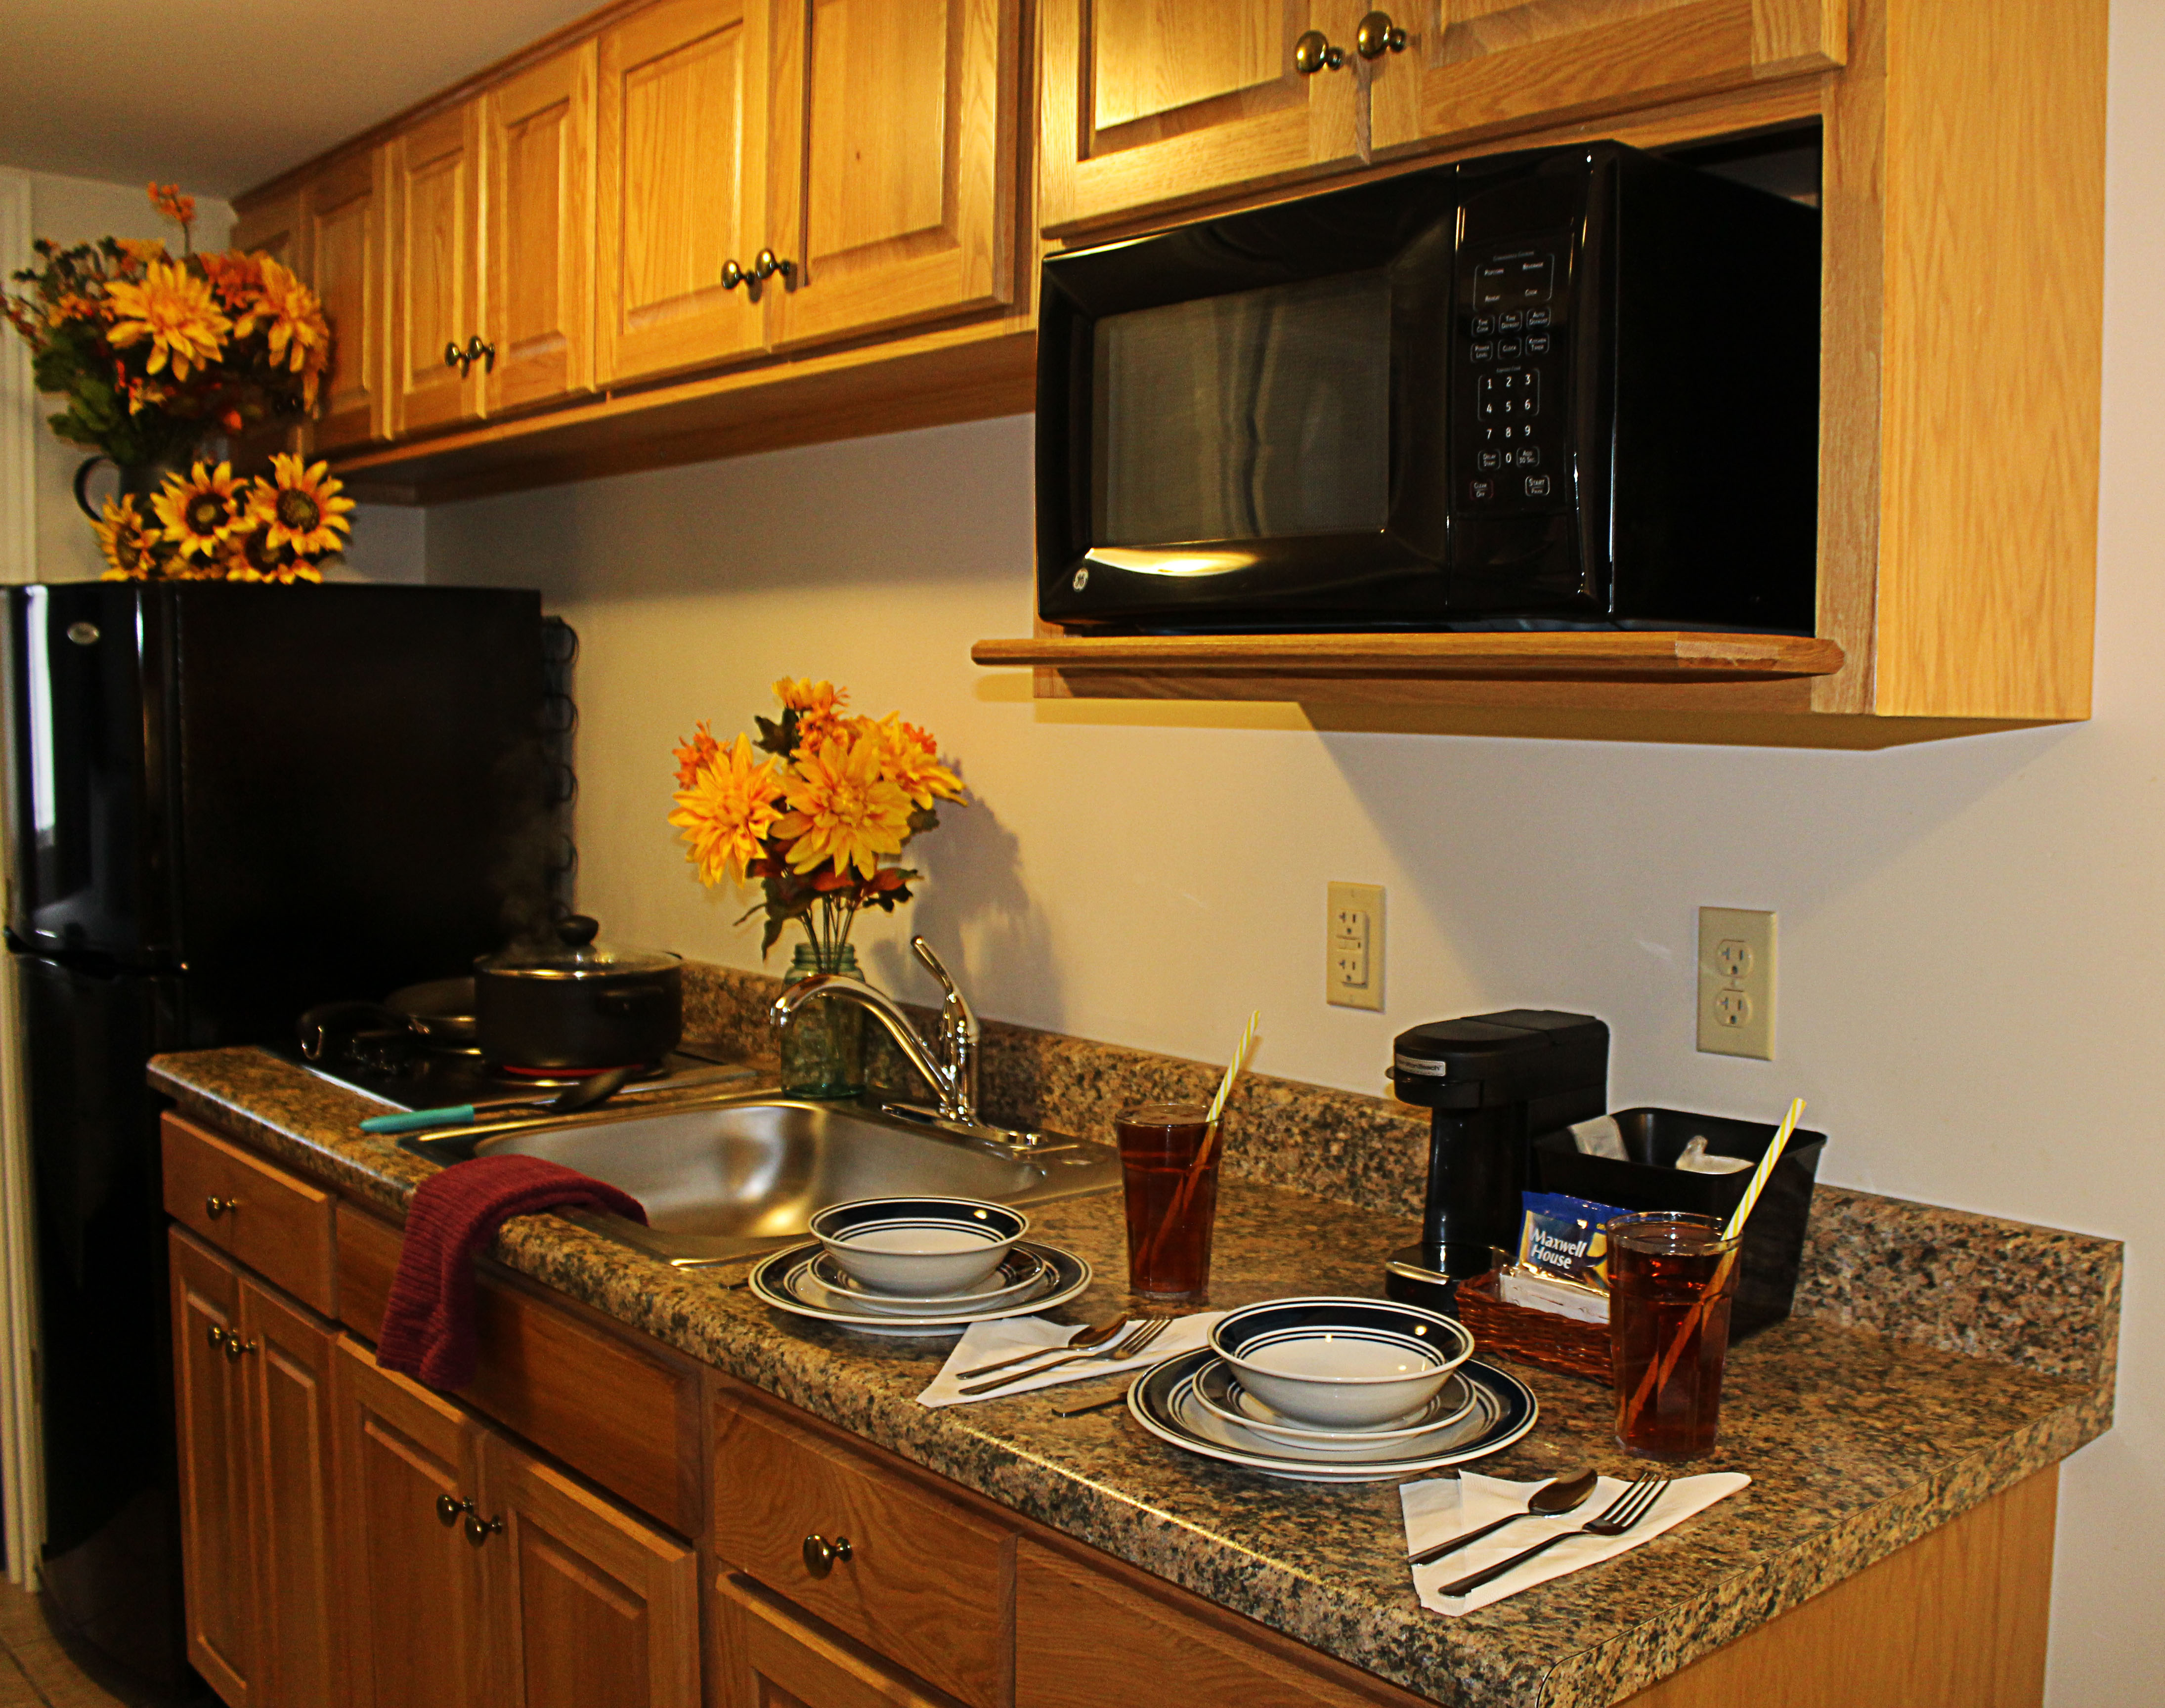 extended-stay-kitchen